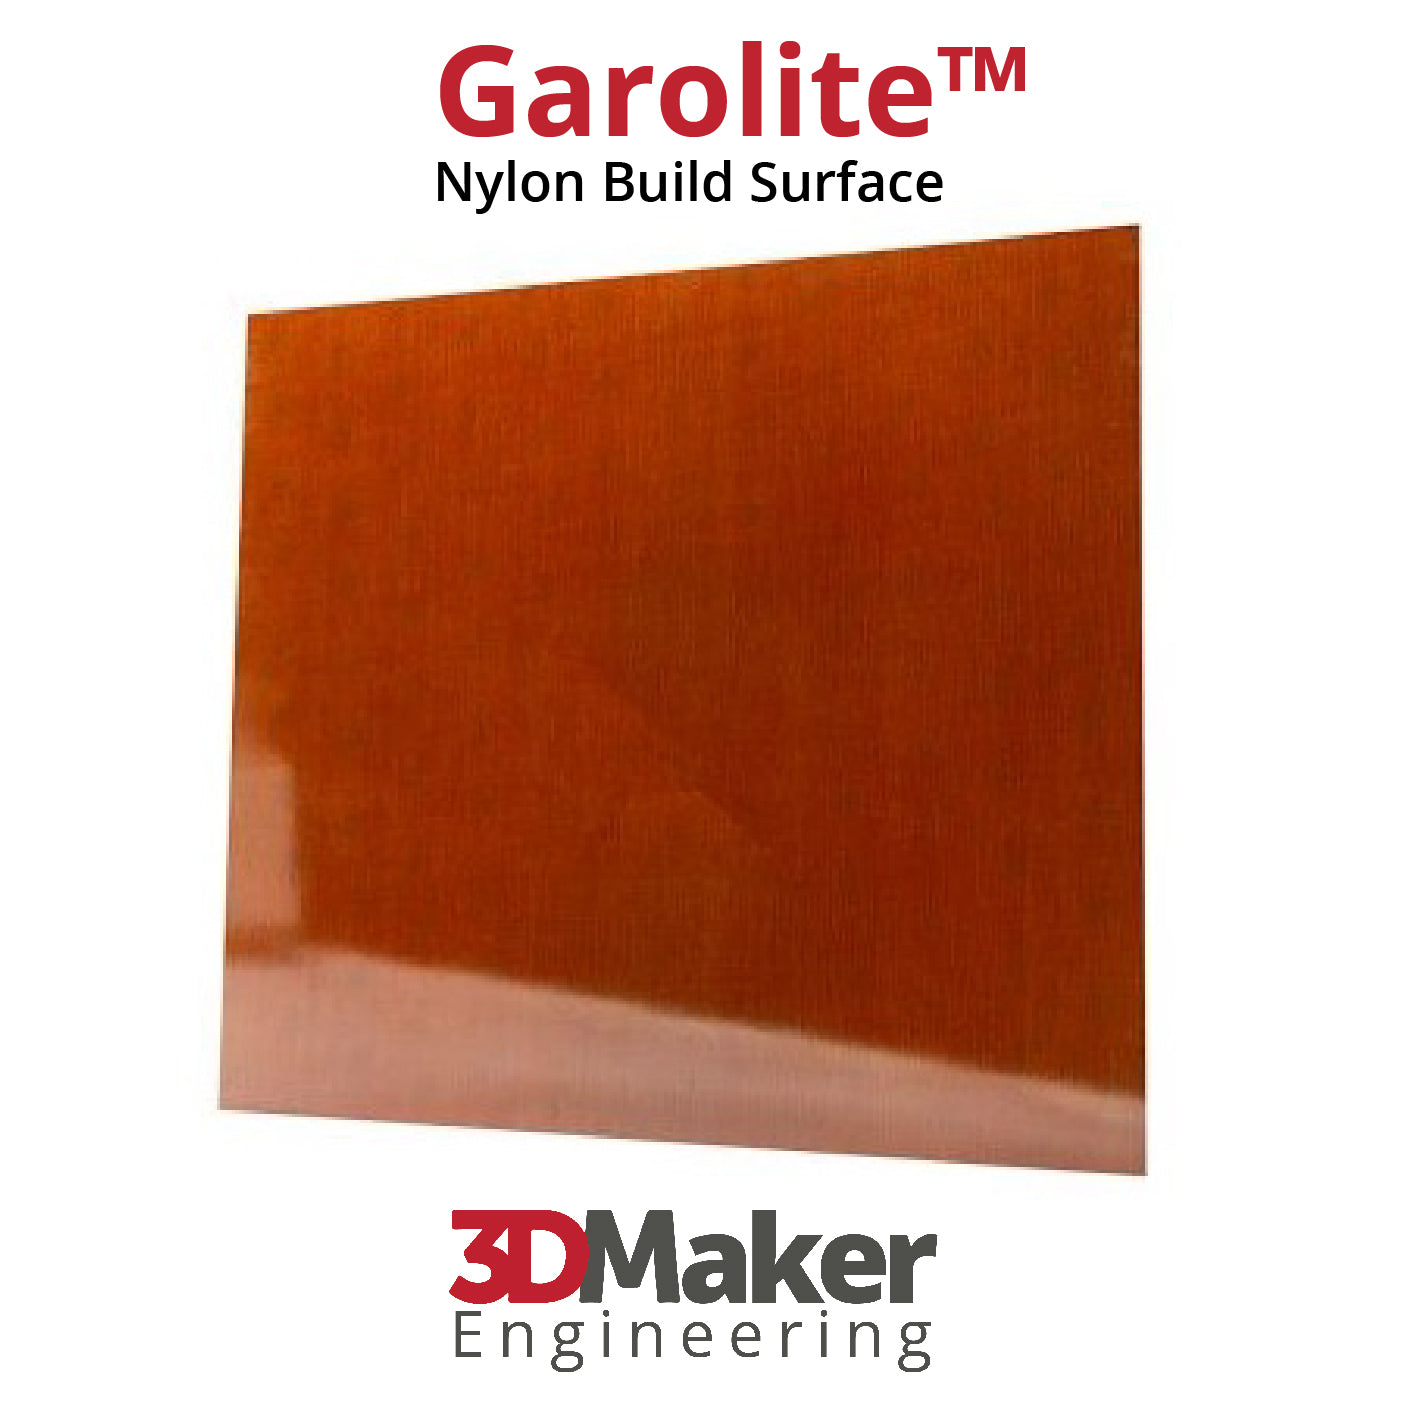 Garolite 3D Printer Build Plate